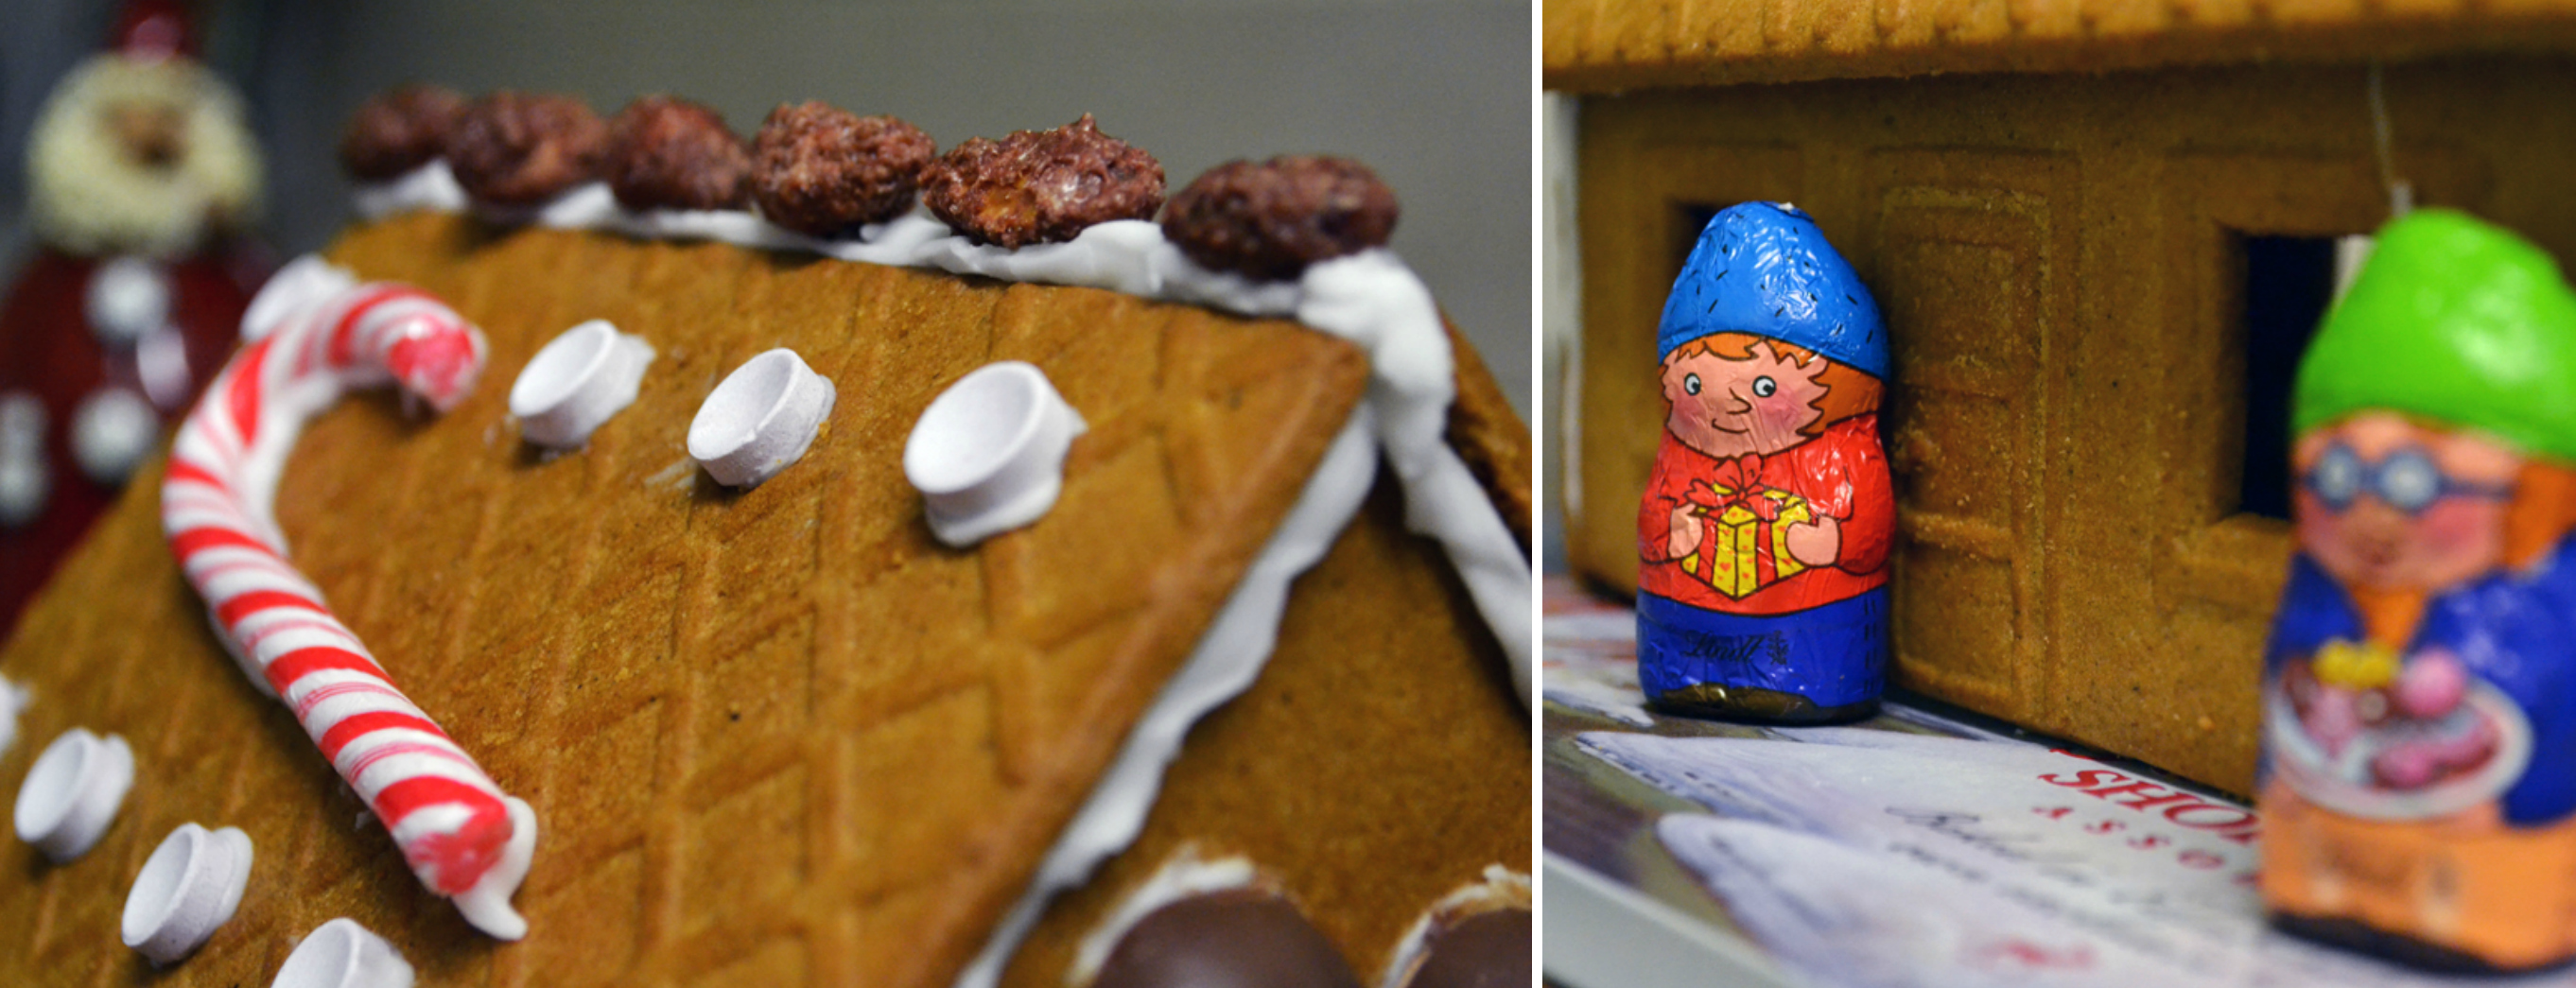 gingerbread-house5